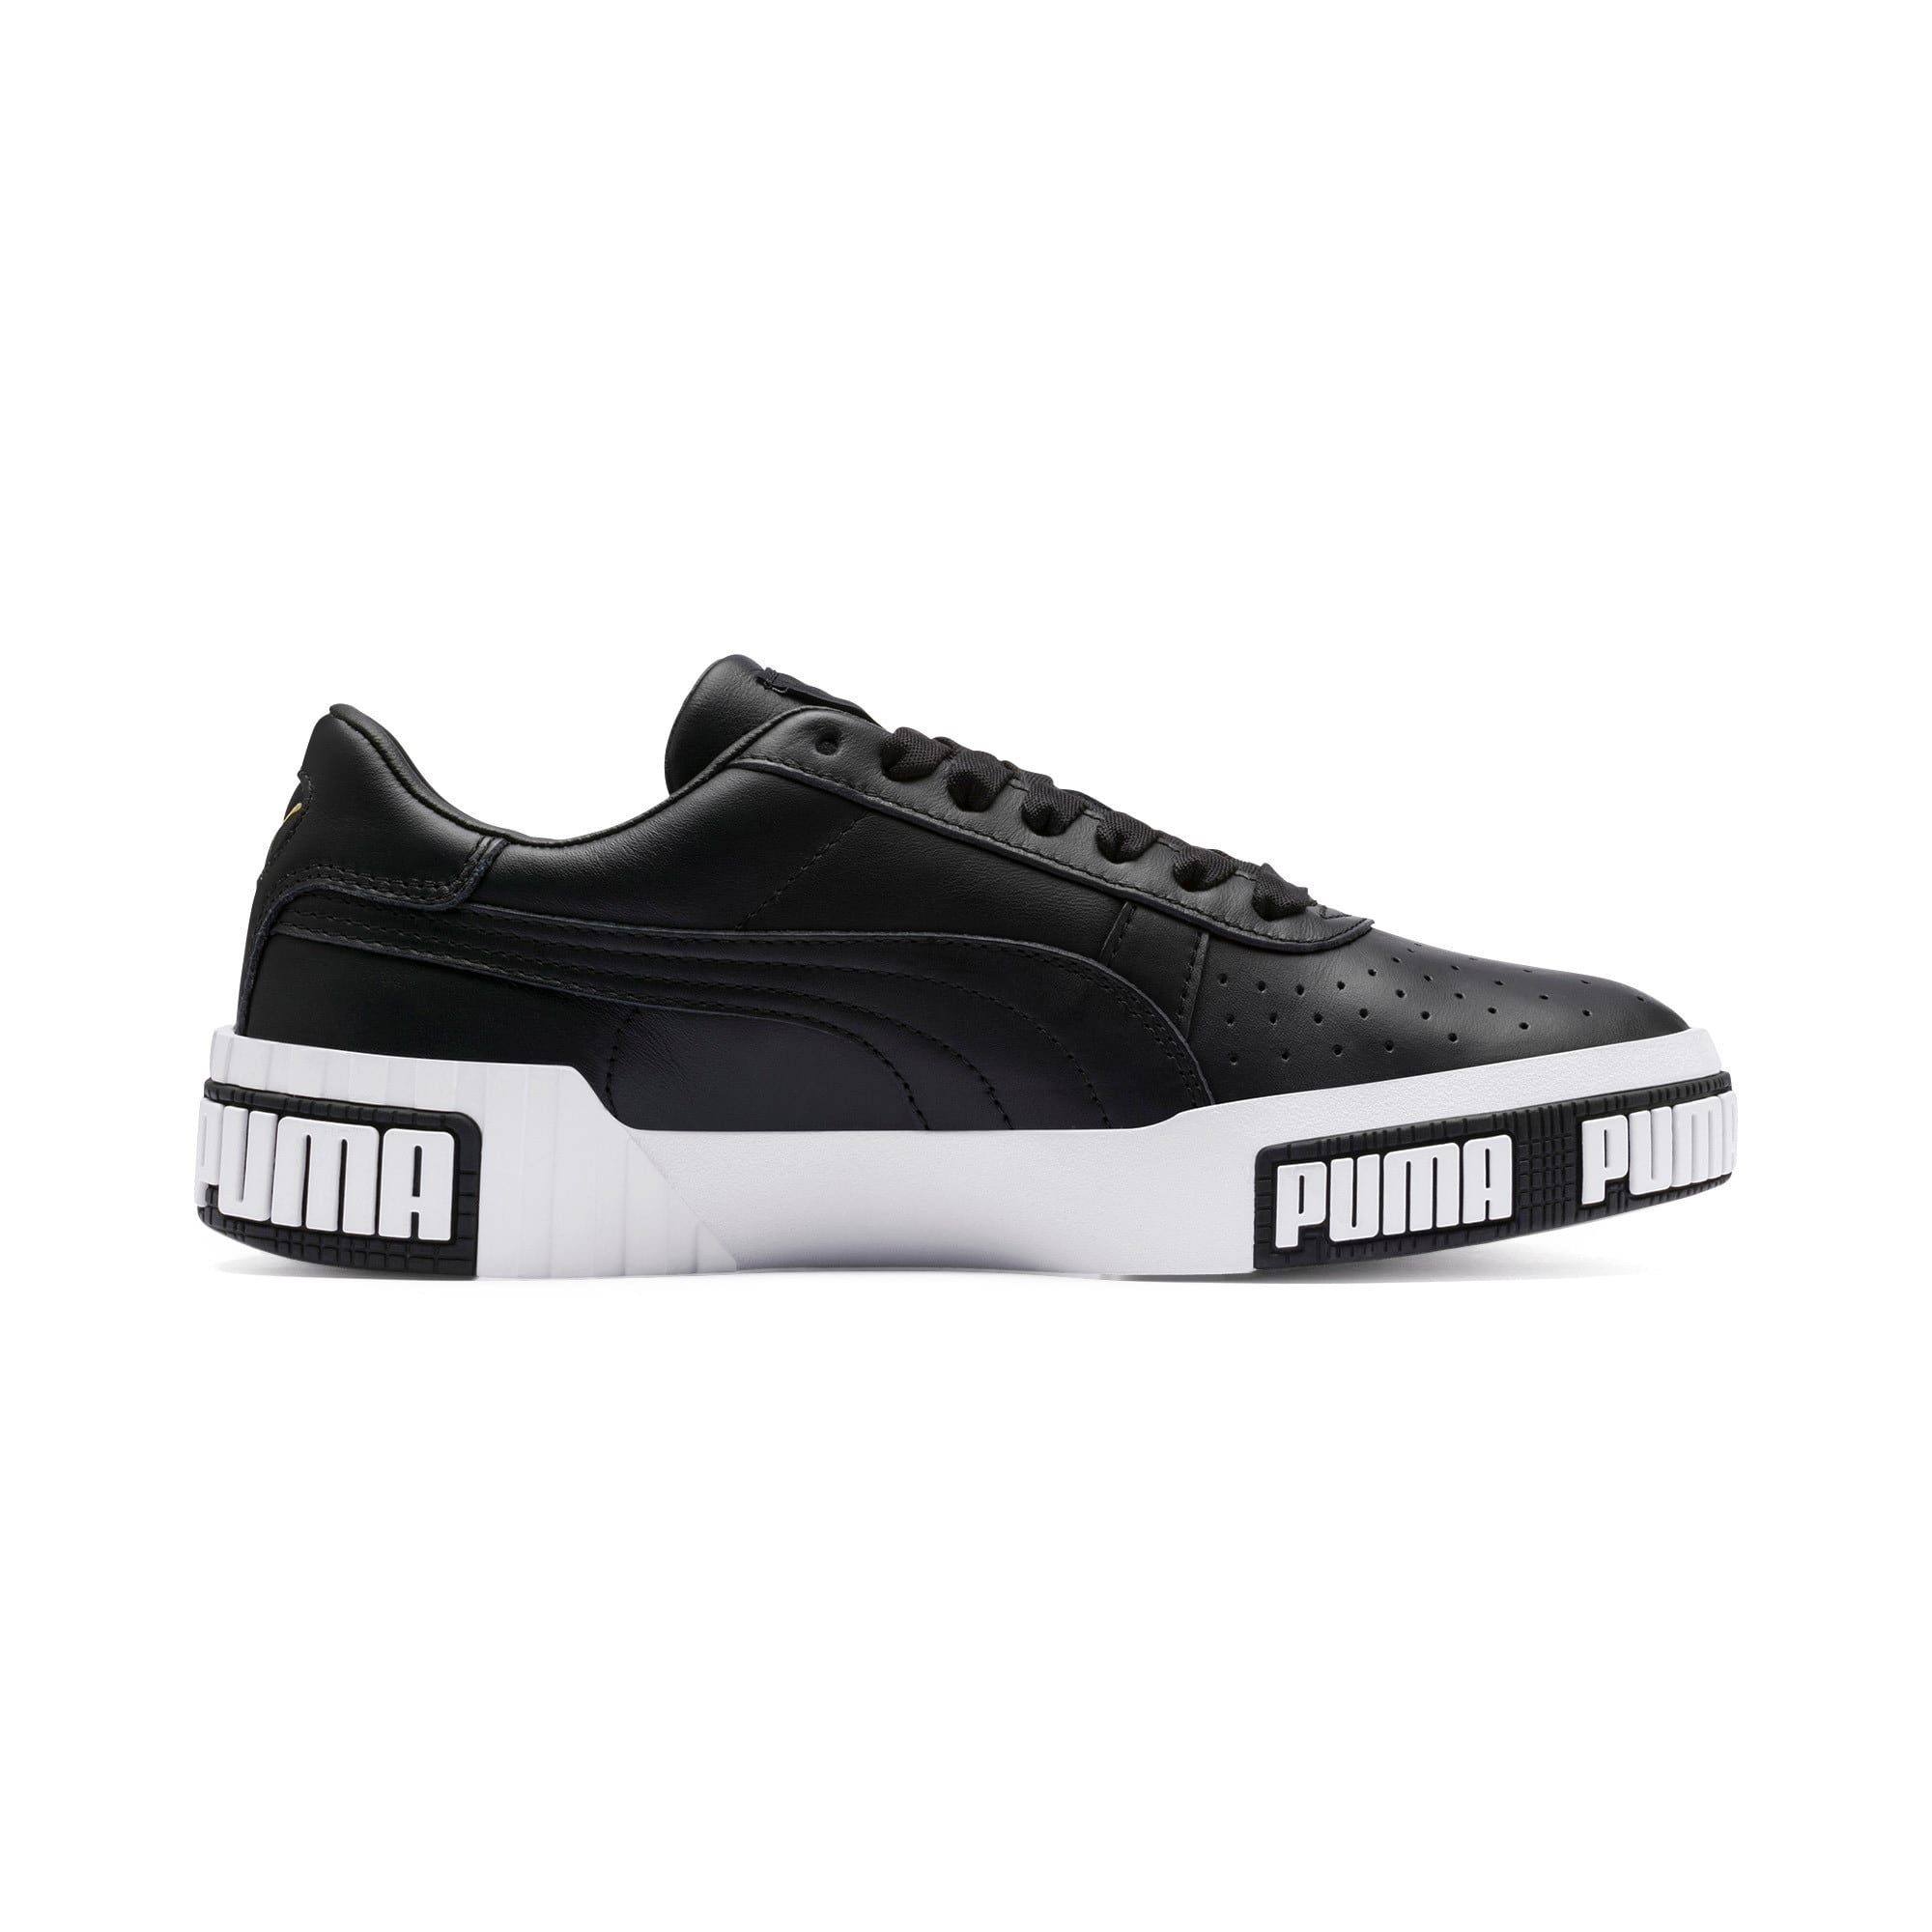 Thumbnail 7 of Damskie buty sportowe Cali Bold, Puma Black-Metallic Gold, medium